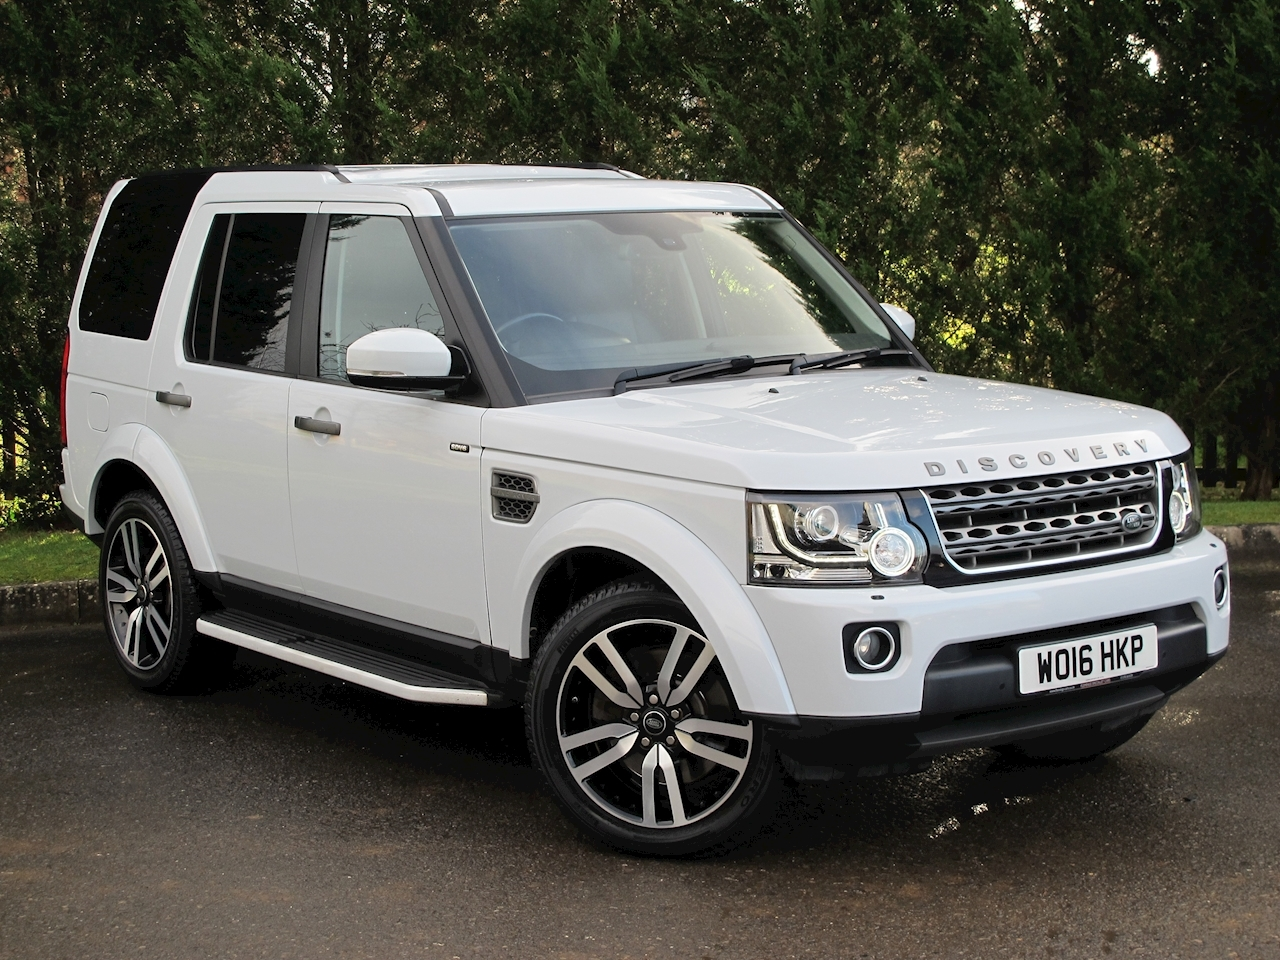 Land Rover Discovery 4 Commercial SE 3.0 5dr Panel Van Automatic Diesel